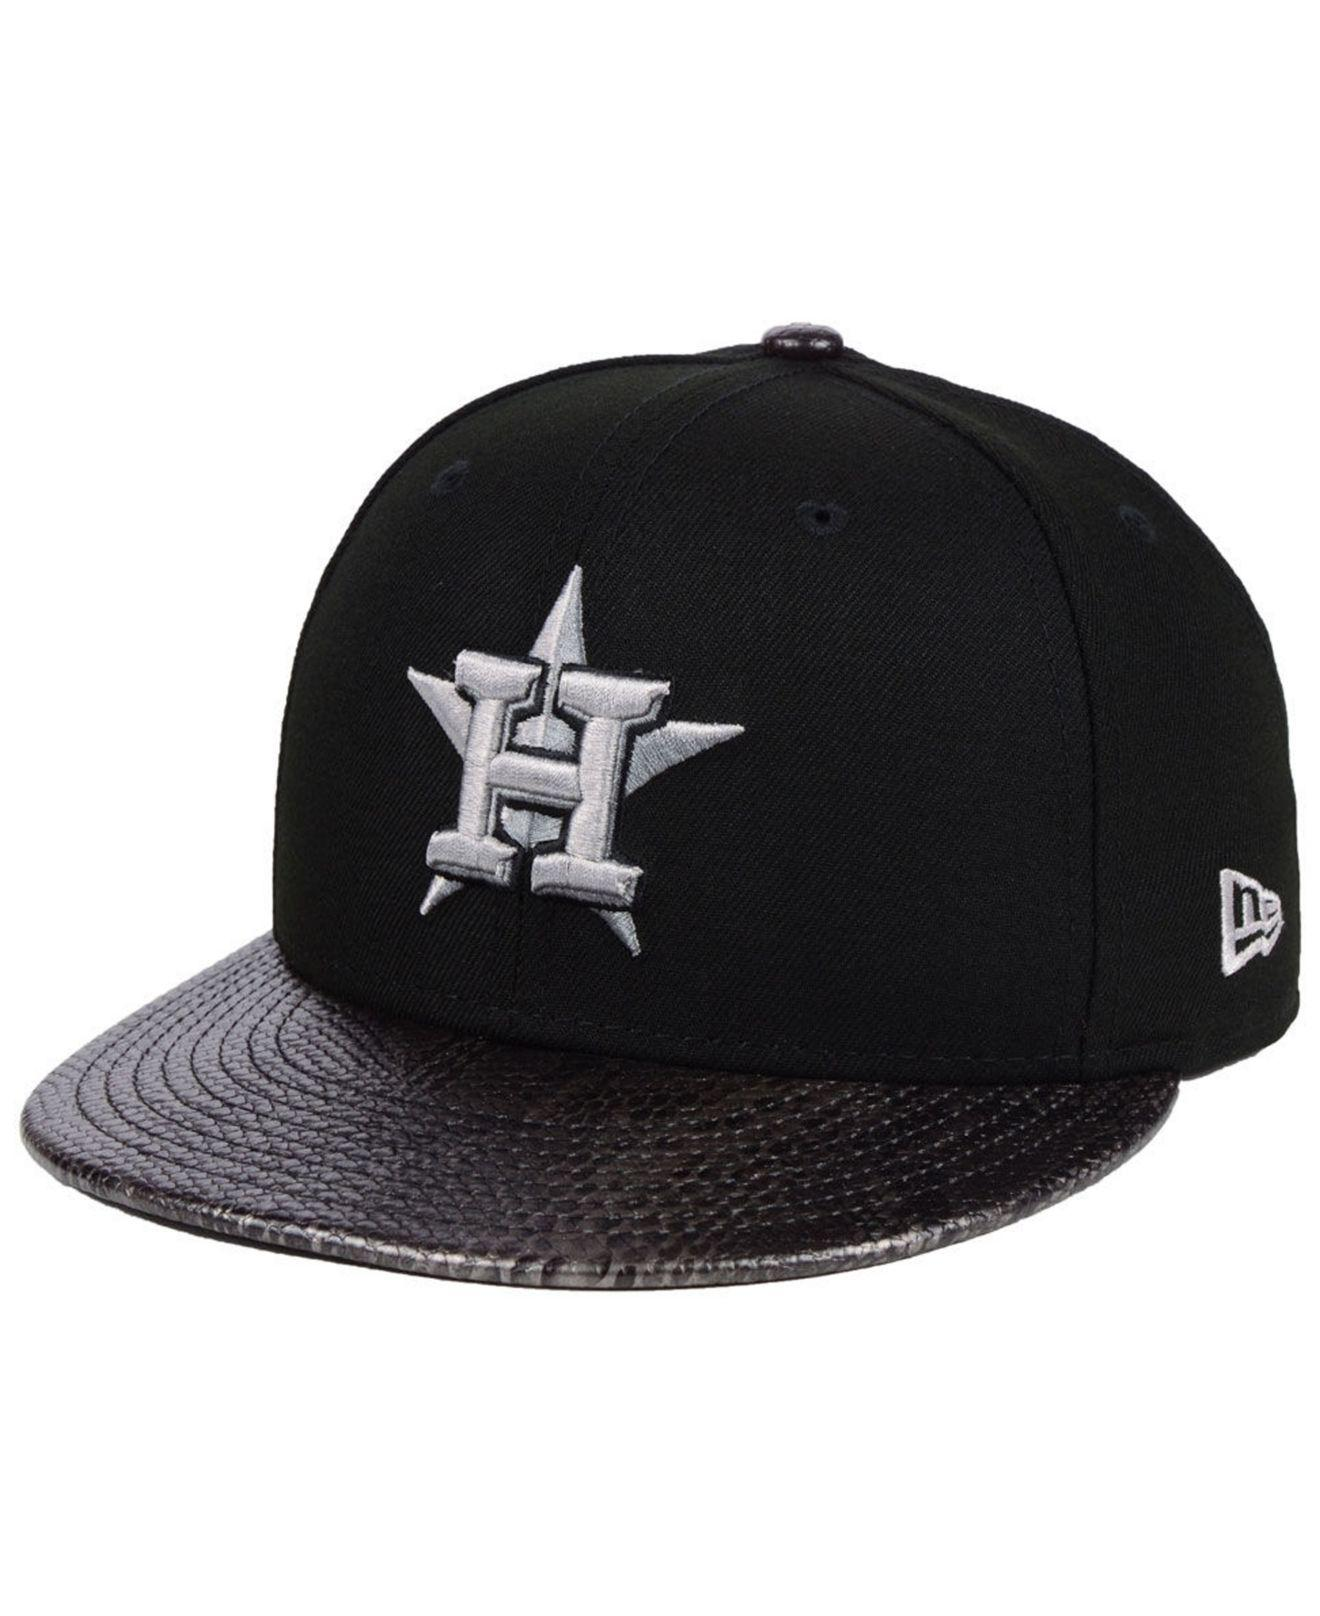 separation shoes 61e18 ccb69 ... italy ktz. mens black houston astros snakeskin sleek 59fifty fitted cap  cabd9 37aee coupon code for texas rangers ...